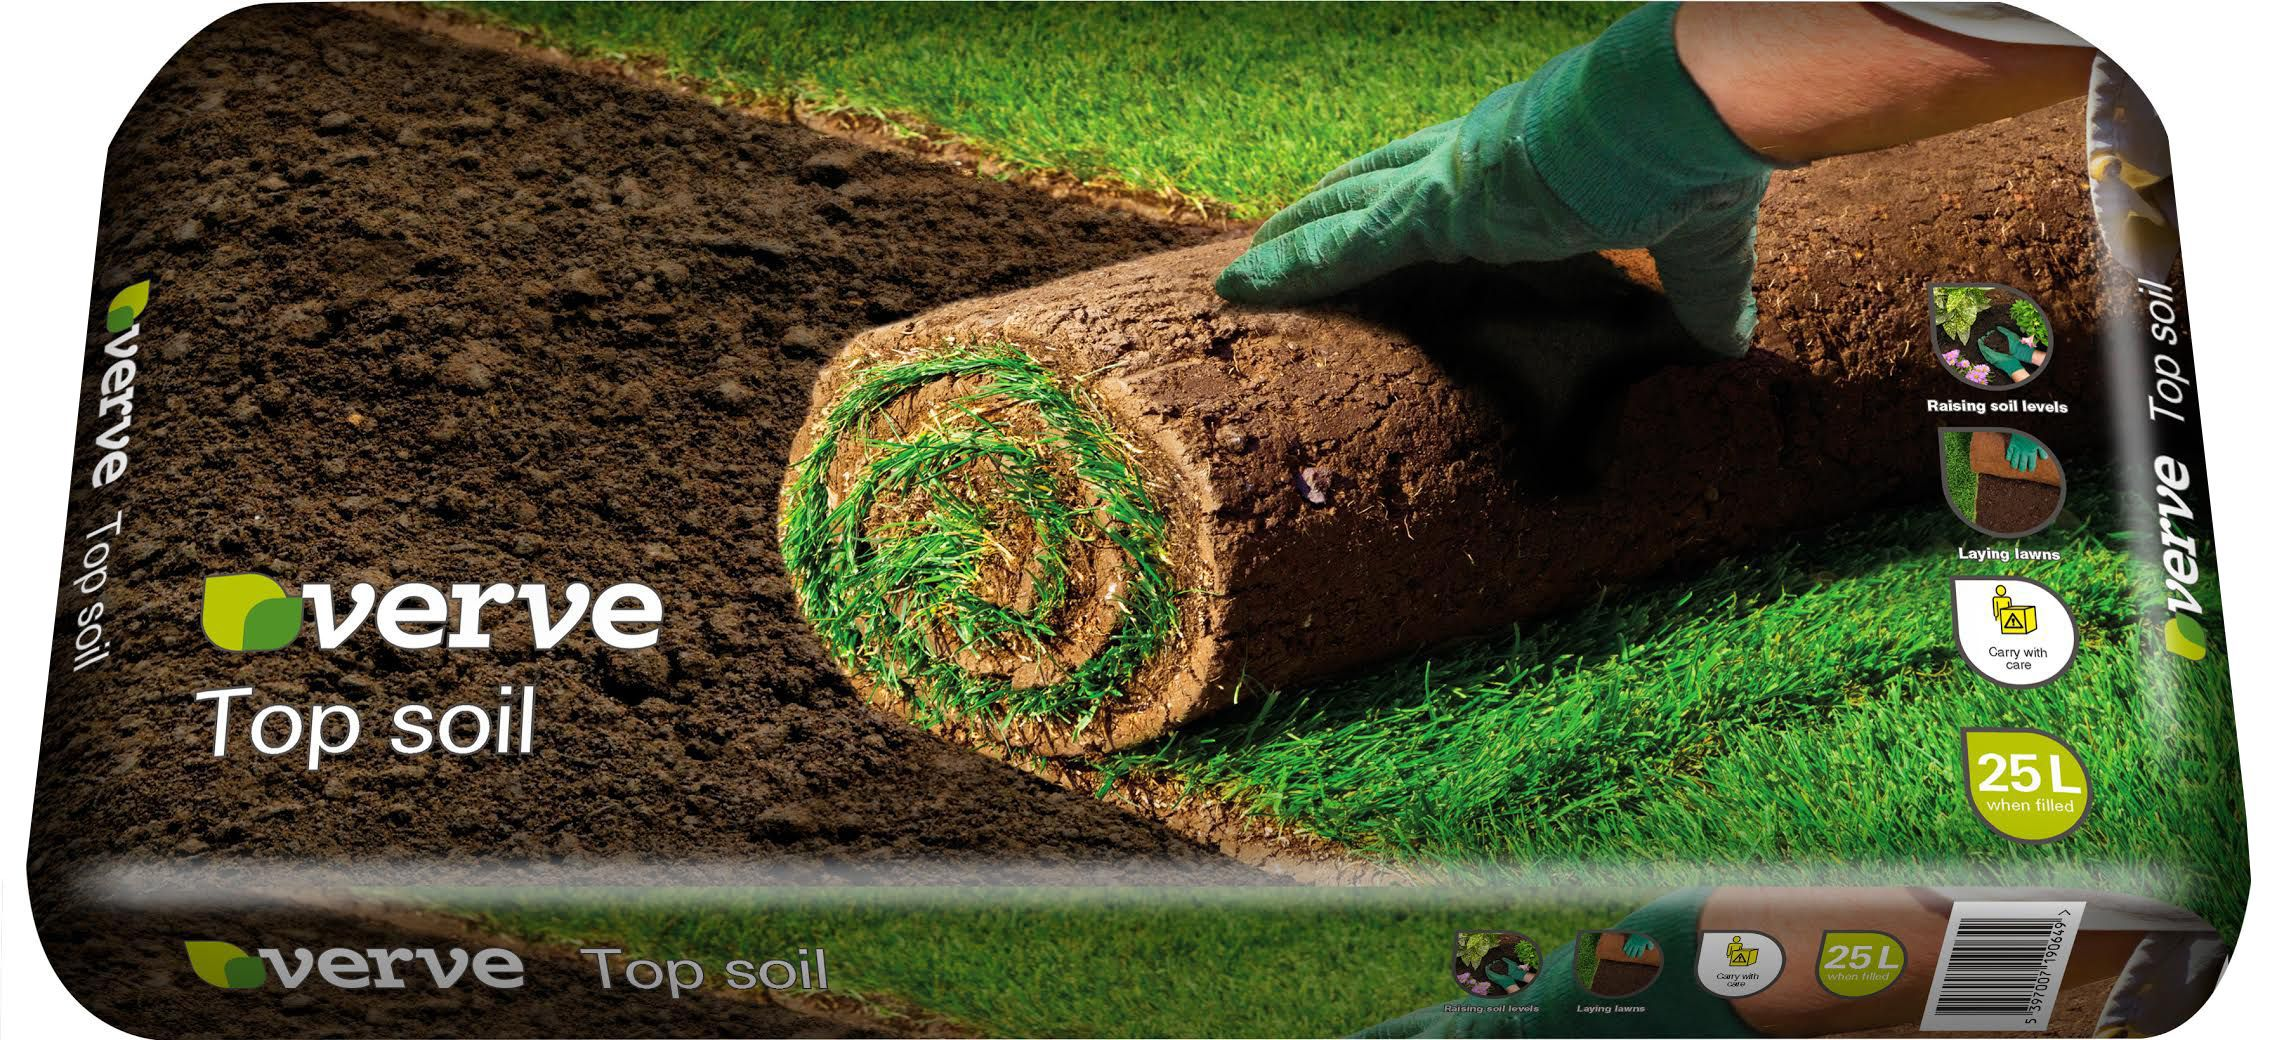 Verve Top Soil 25l Departments Tradepoint